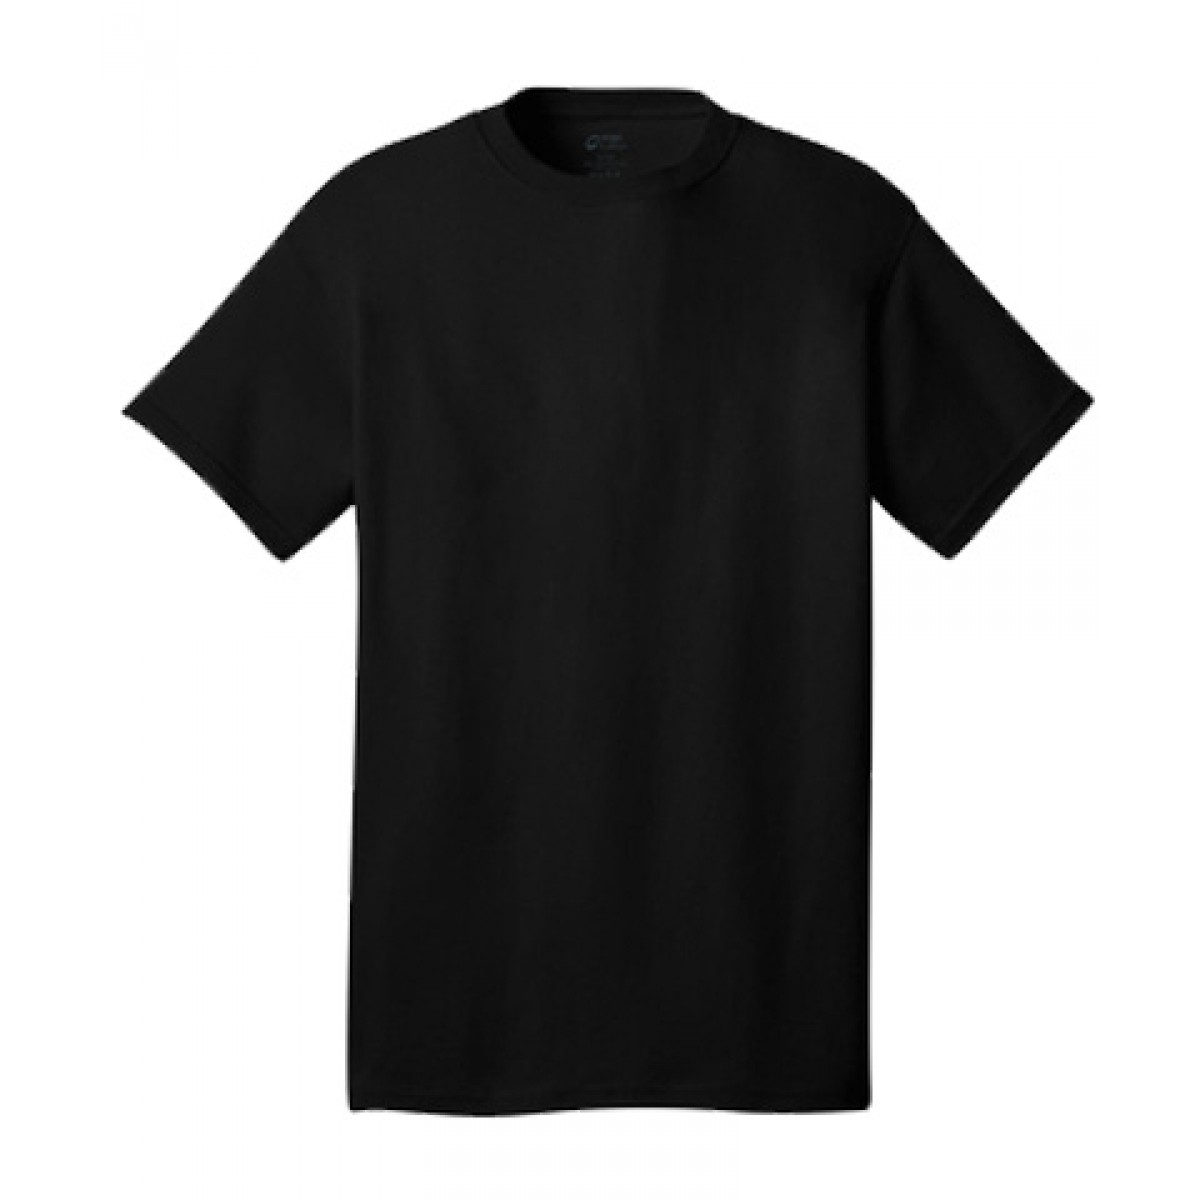 Soft 100% Cotton T-Shirt-Black-YL